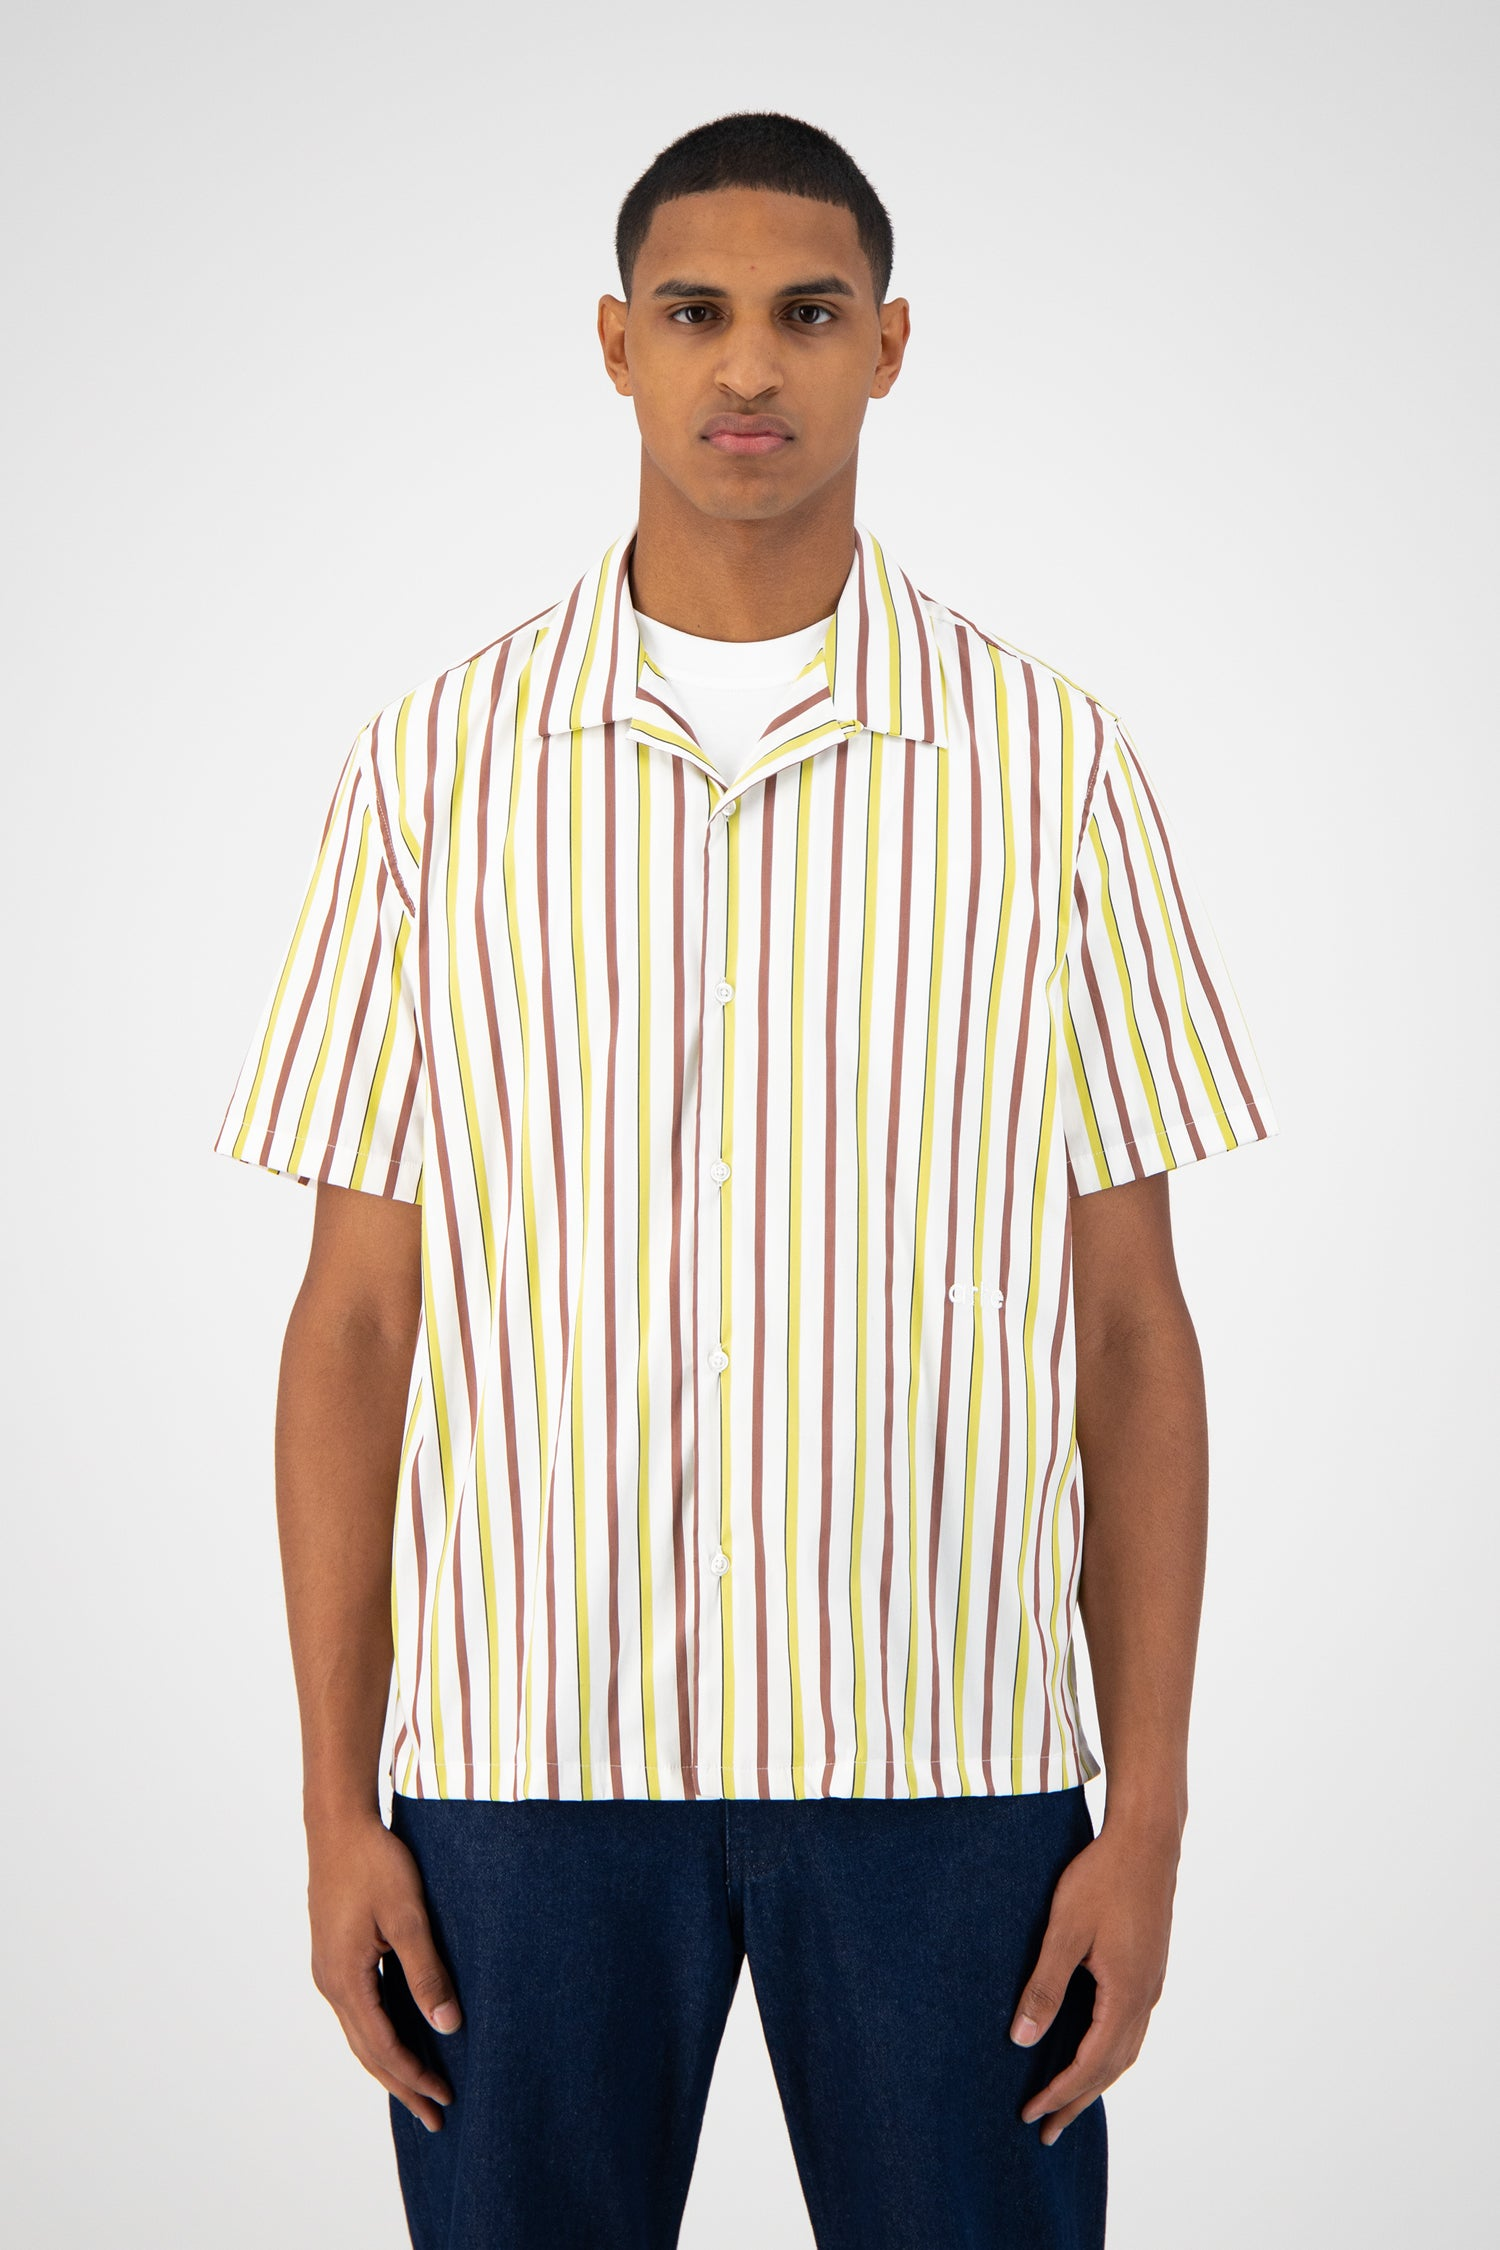 Steven Shortsleeve Shirt - Brown Striped